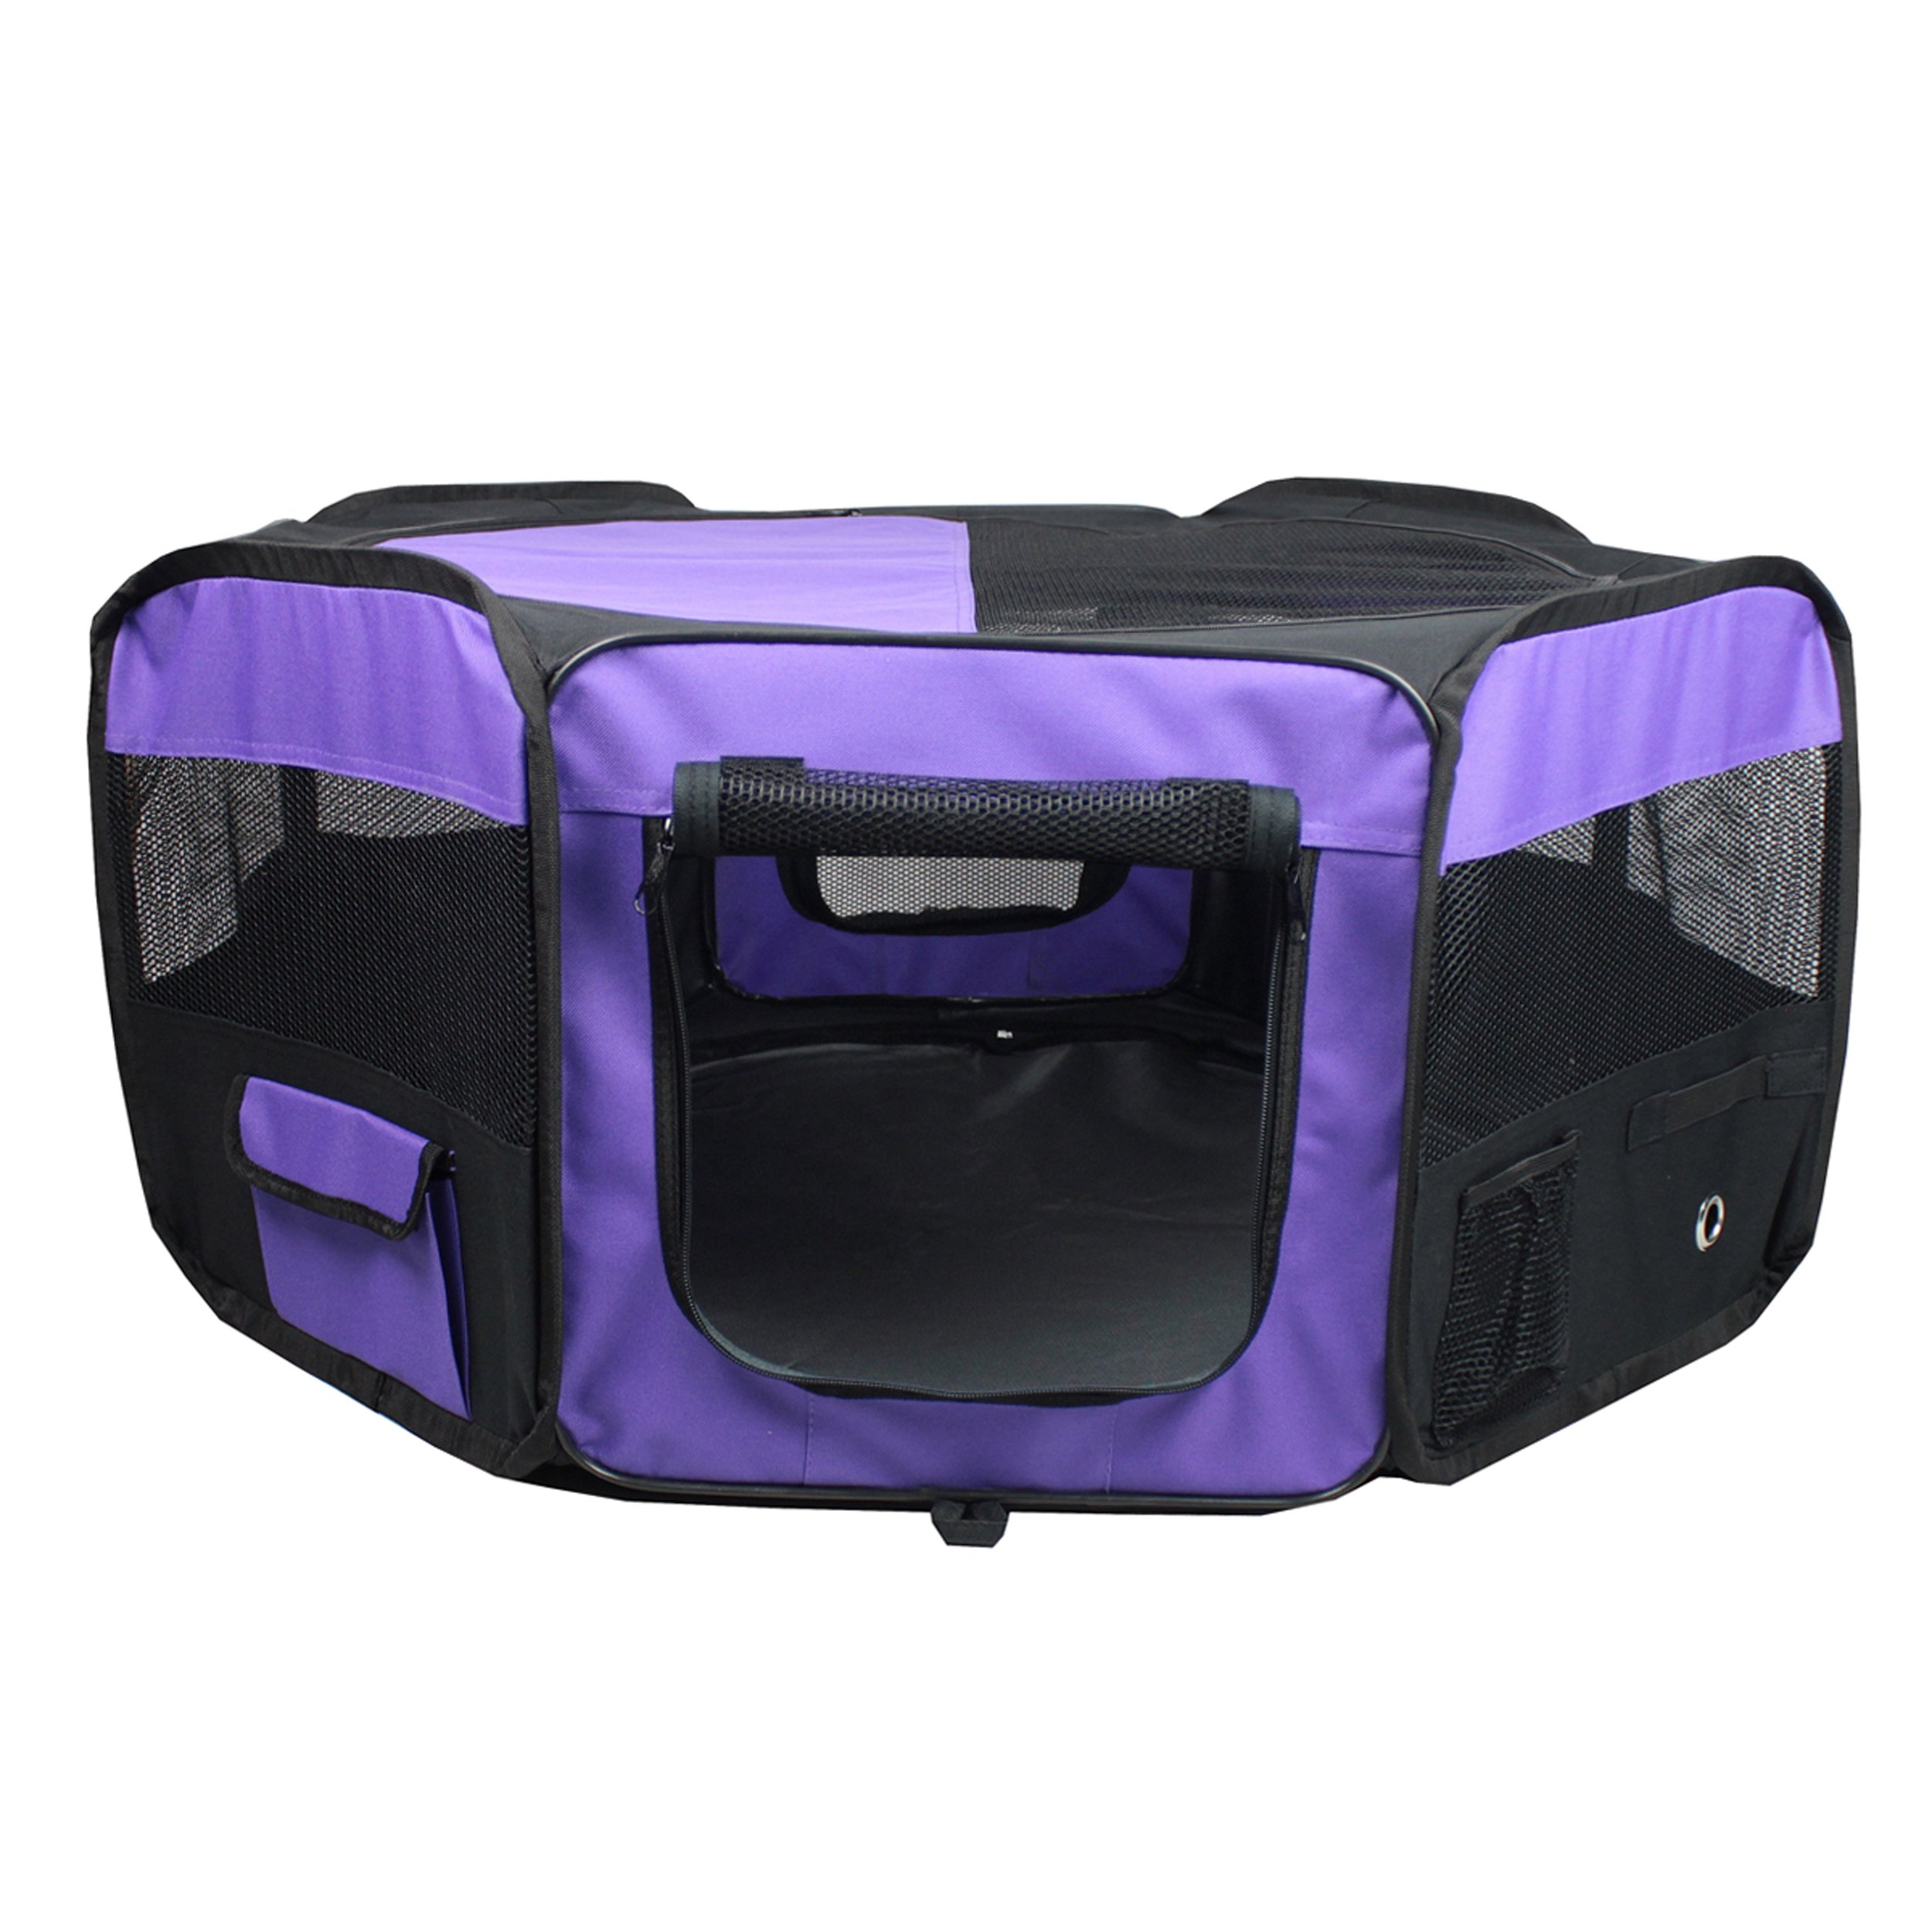 Iconic Pet Portable Pet Soft Play Pen, Purple, Small by Iconic Pet (Image #2)